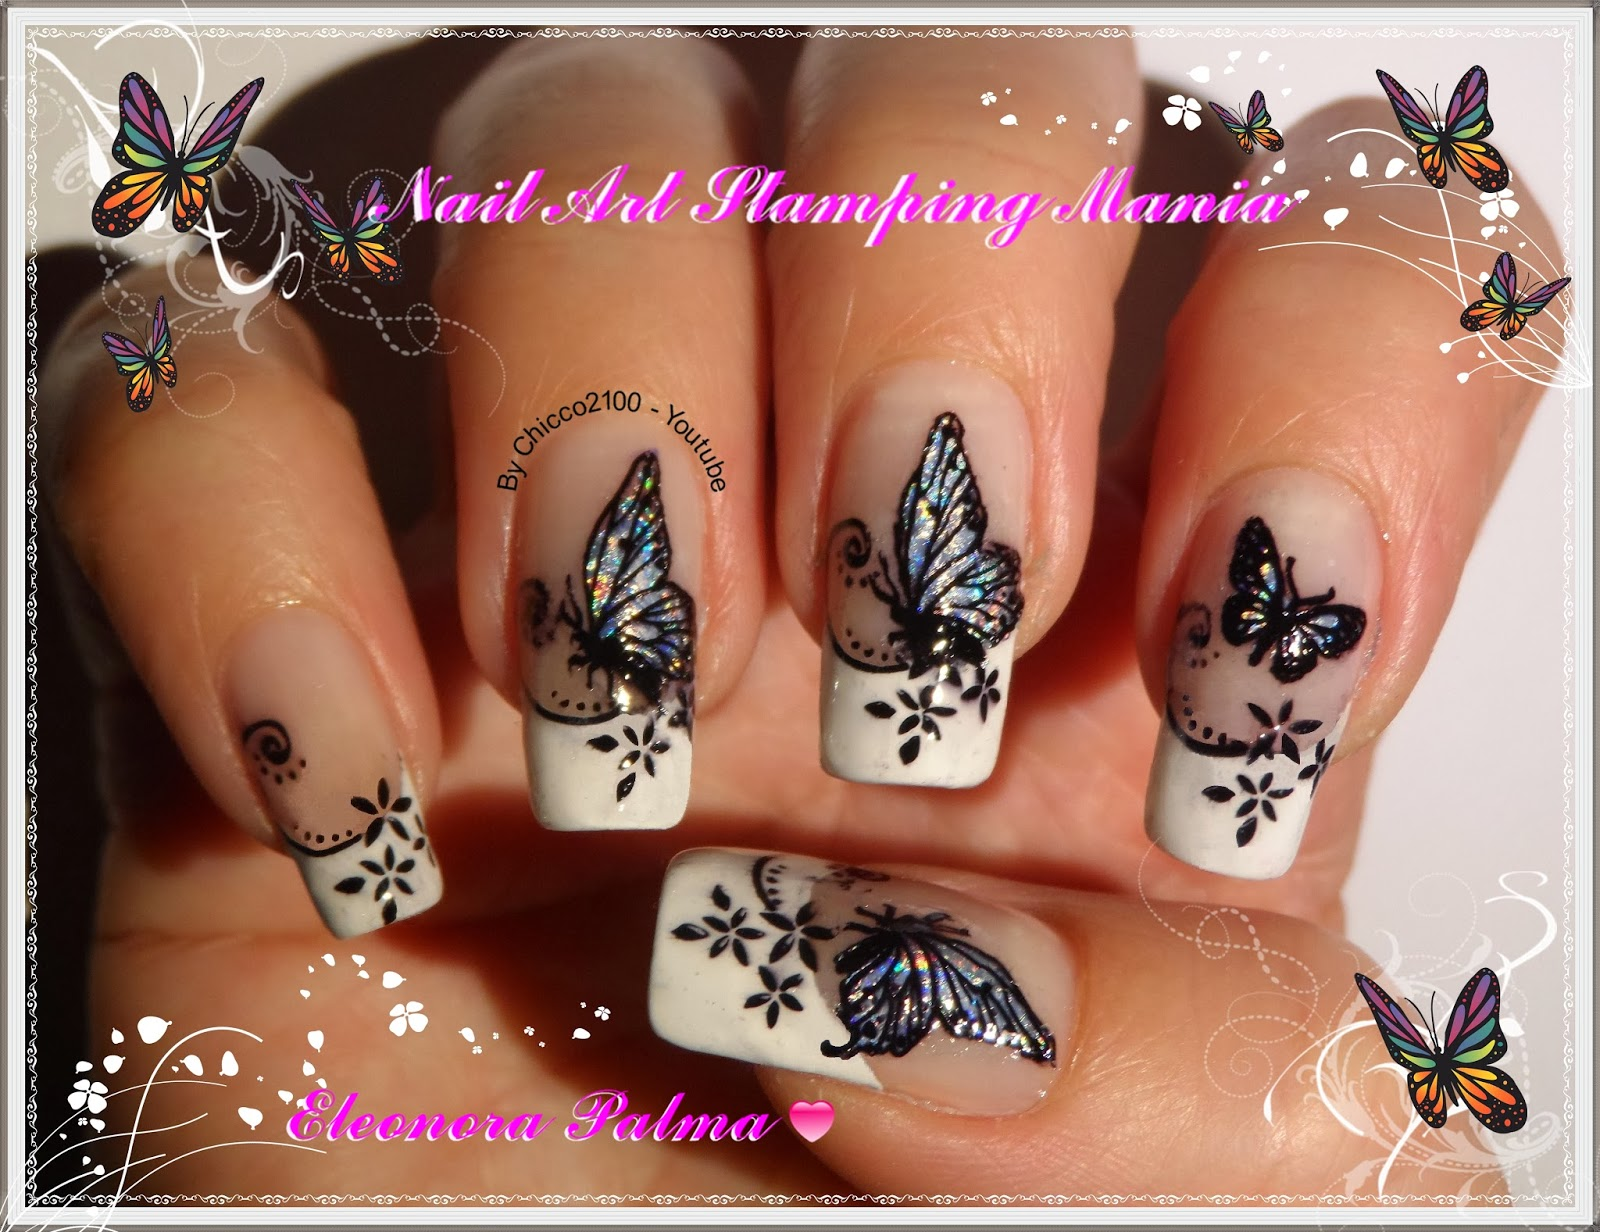 Amato Nail Art Stamping Mania: Stamping Decal with Nail Foil  YT66